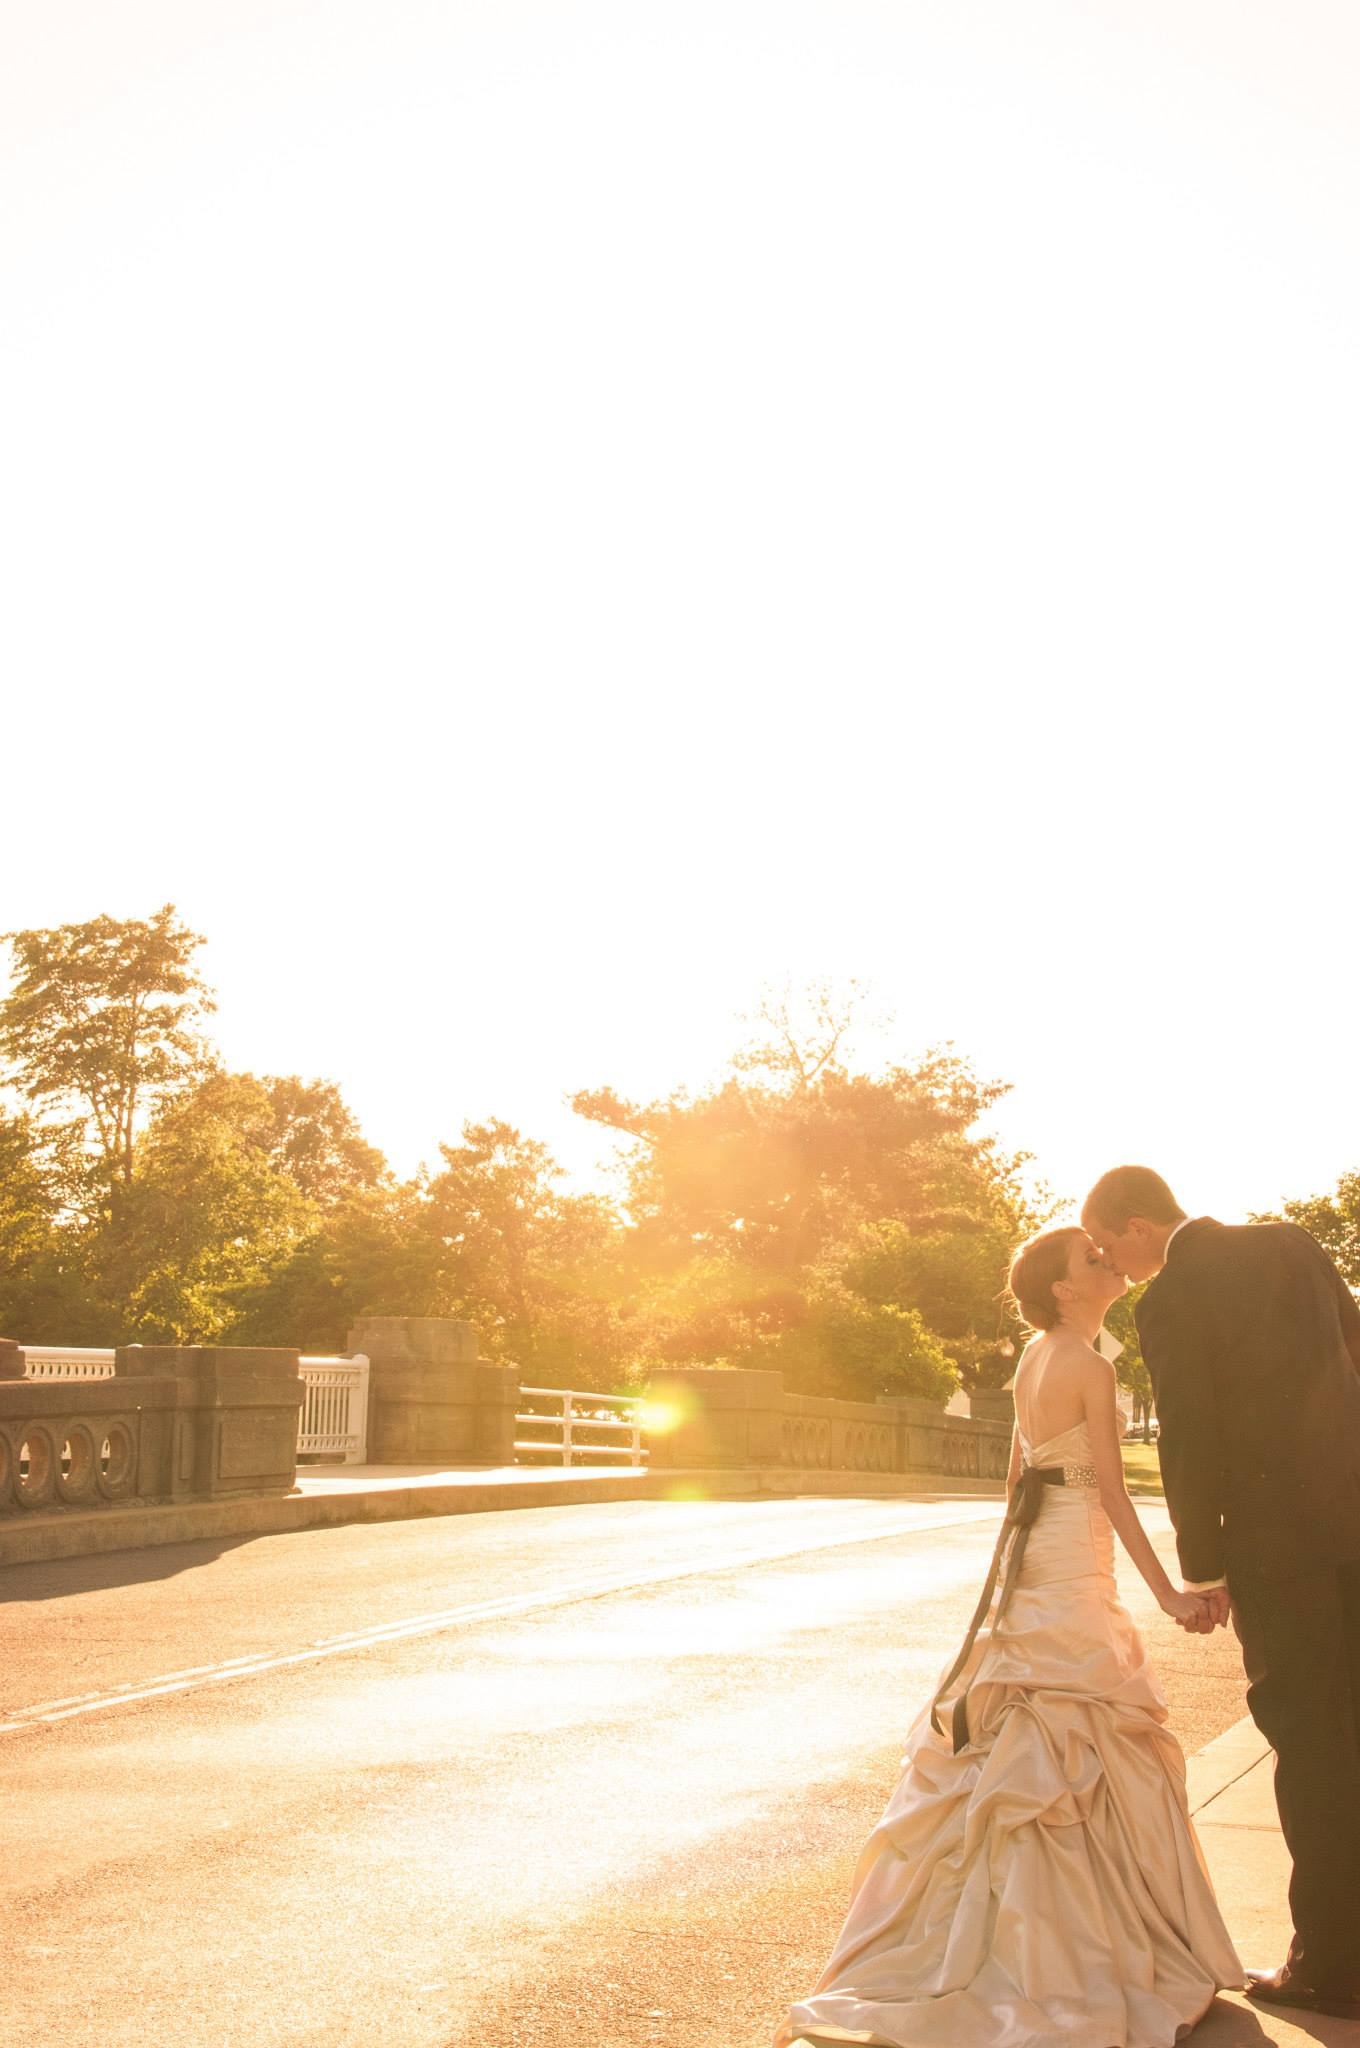 Reasonably Priced All-Inclusive Wedding Photo Packages From Dayton Ohio Photographer